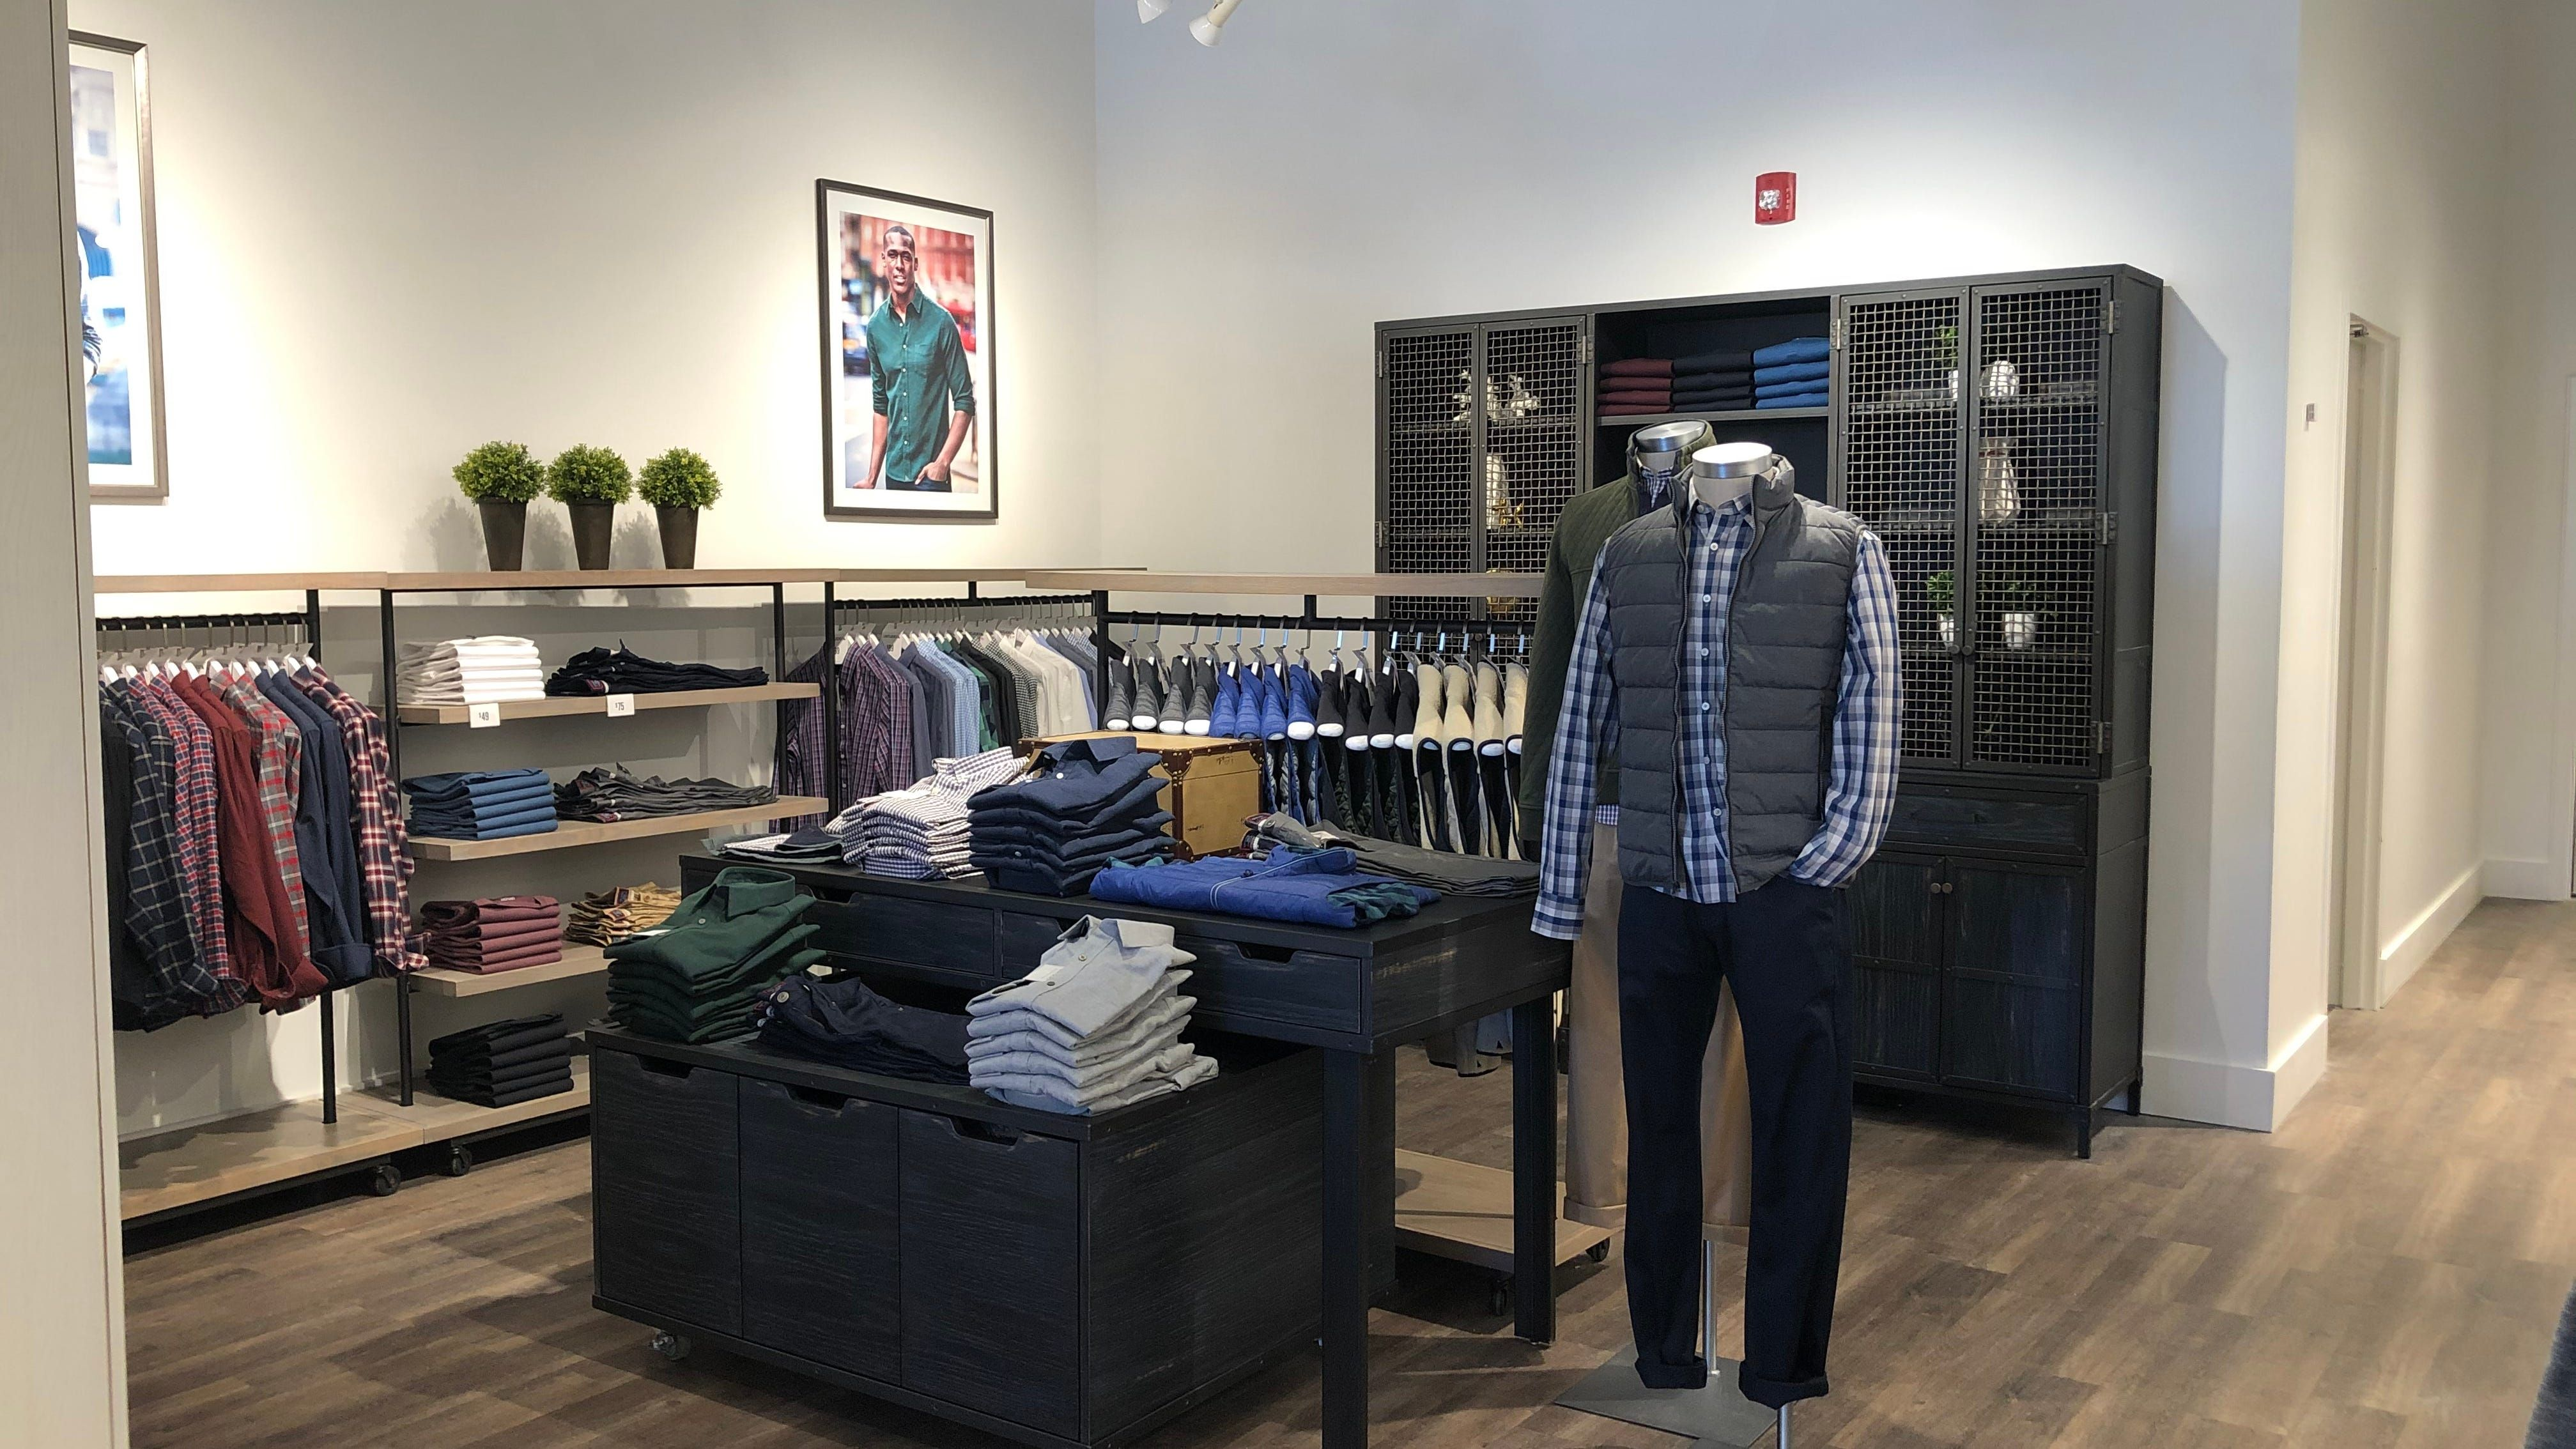 About 20 New Stores And Restaurants Opened In Germantown This Year With Another Interior Decor Retailer Planning To Open In Bbq Company Germantown Restaurant